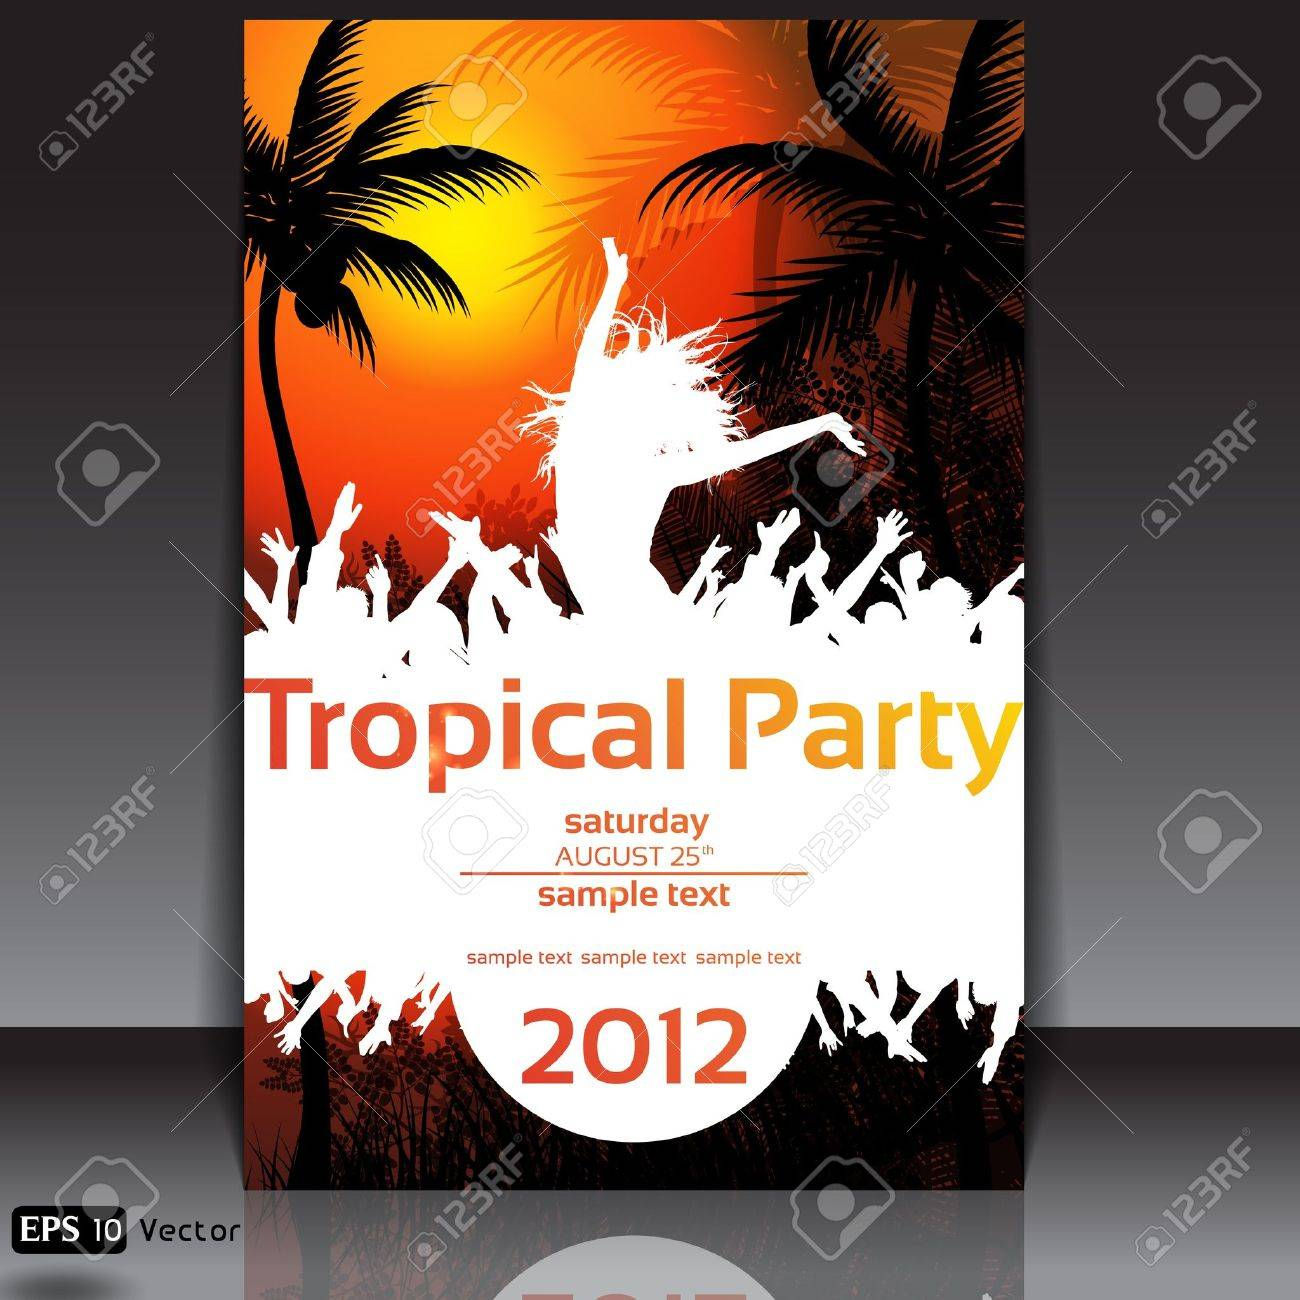 Tropical Disco Dance Background with people and sunset Stock Vector - 14552346